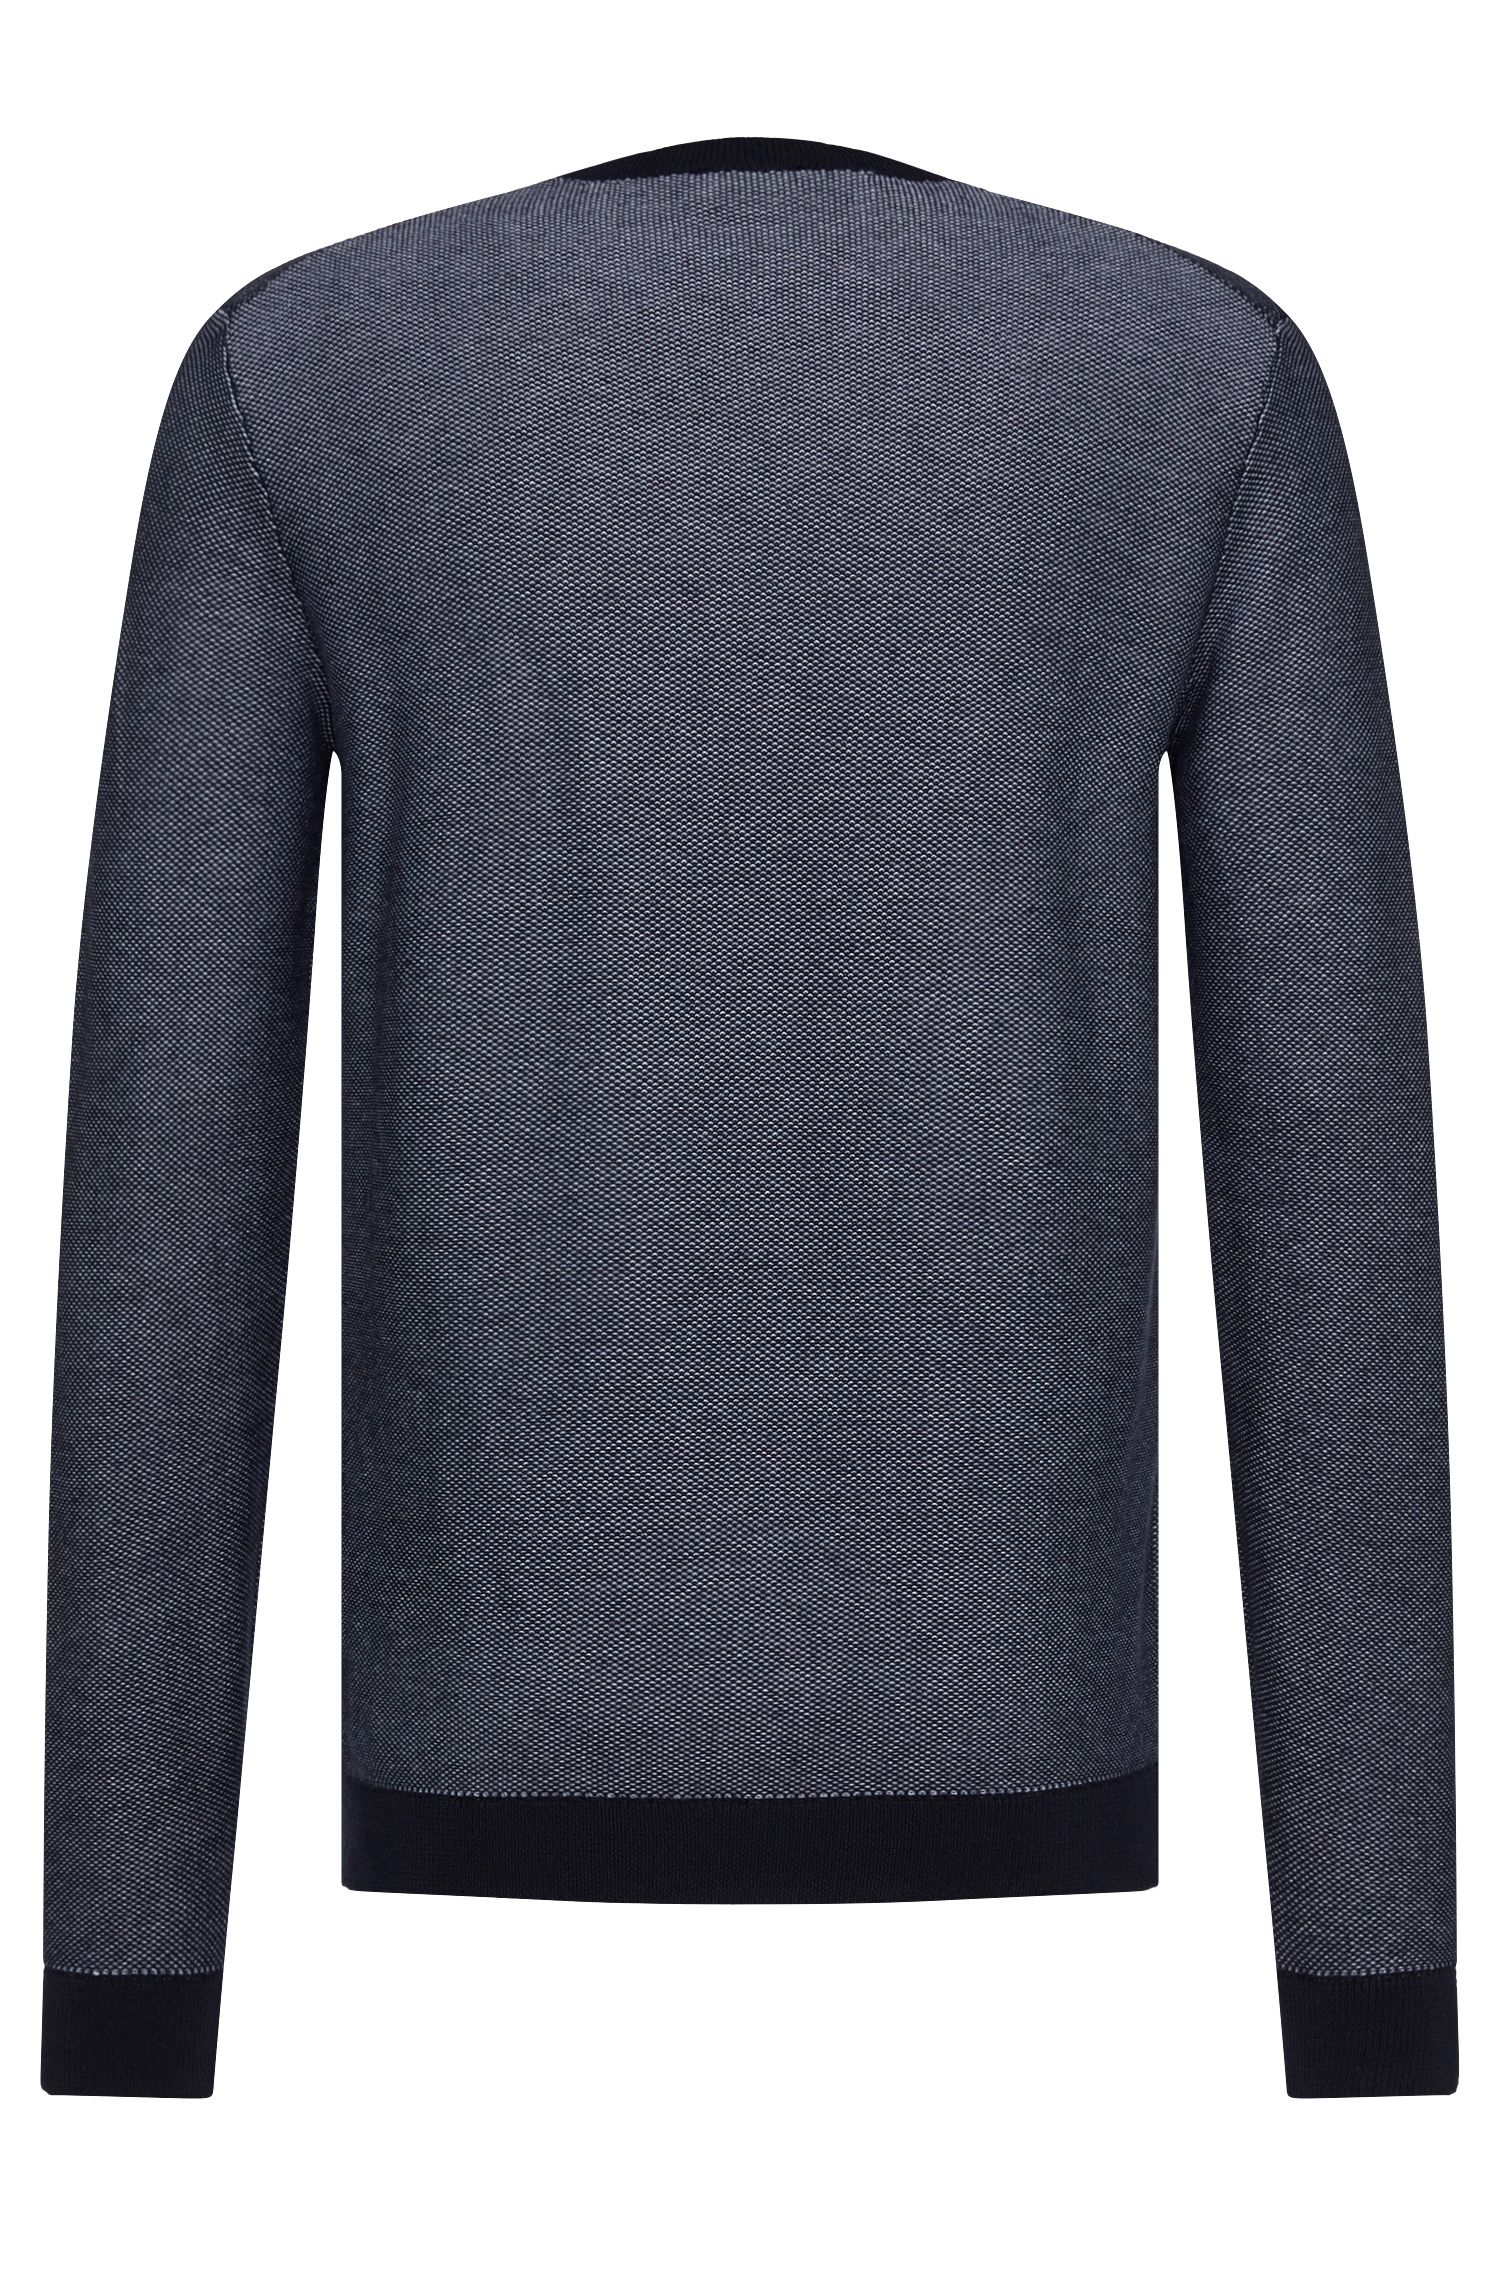 Fein gemusterter Relaxed-Fit Pullover aus Baumwolle: 'Sarmon'